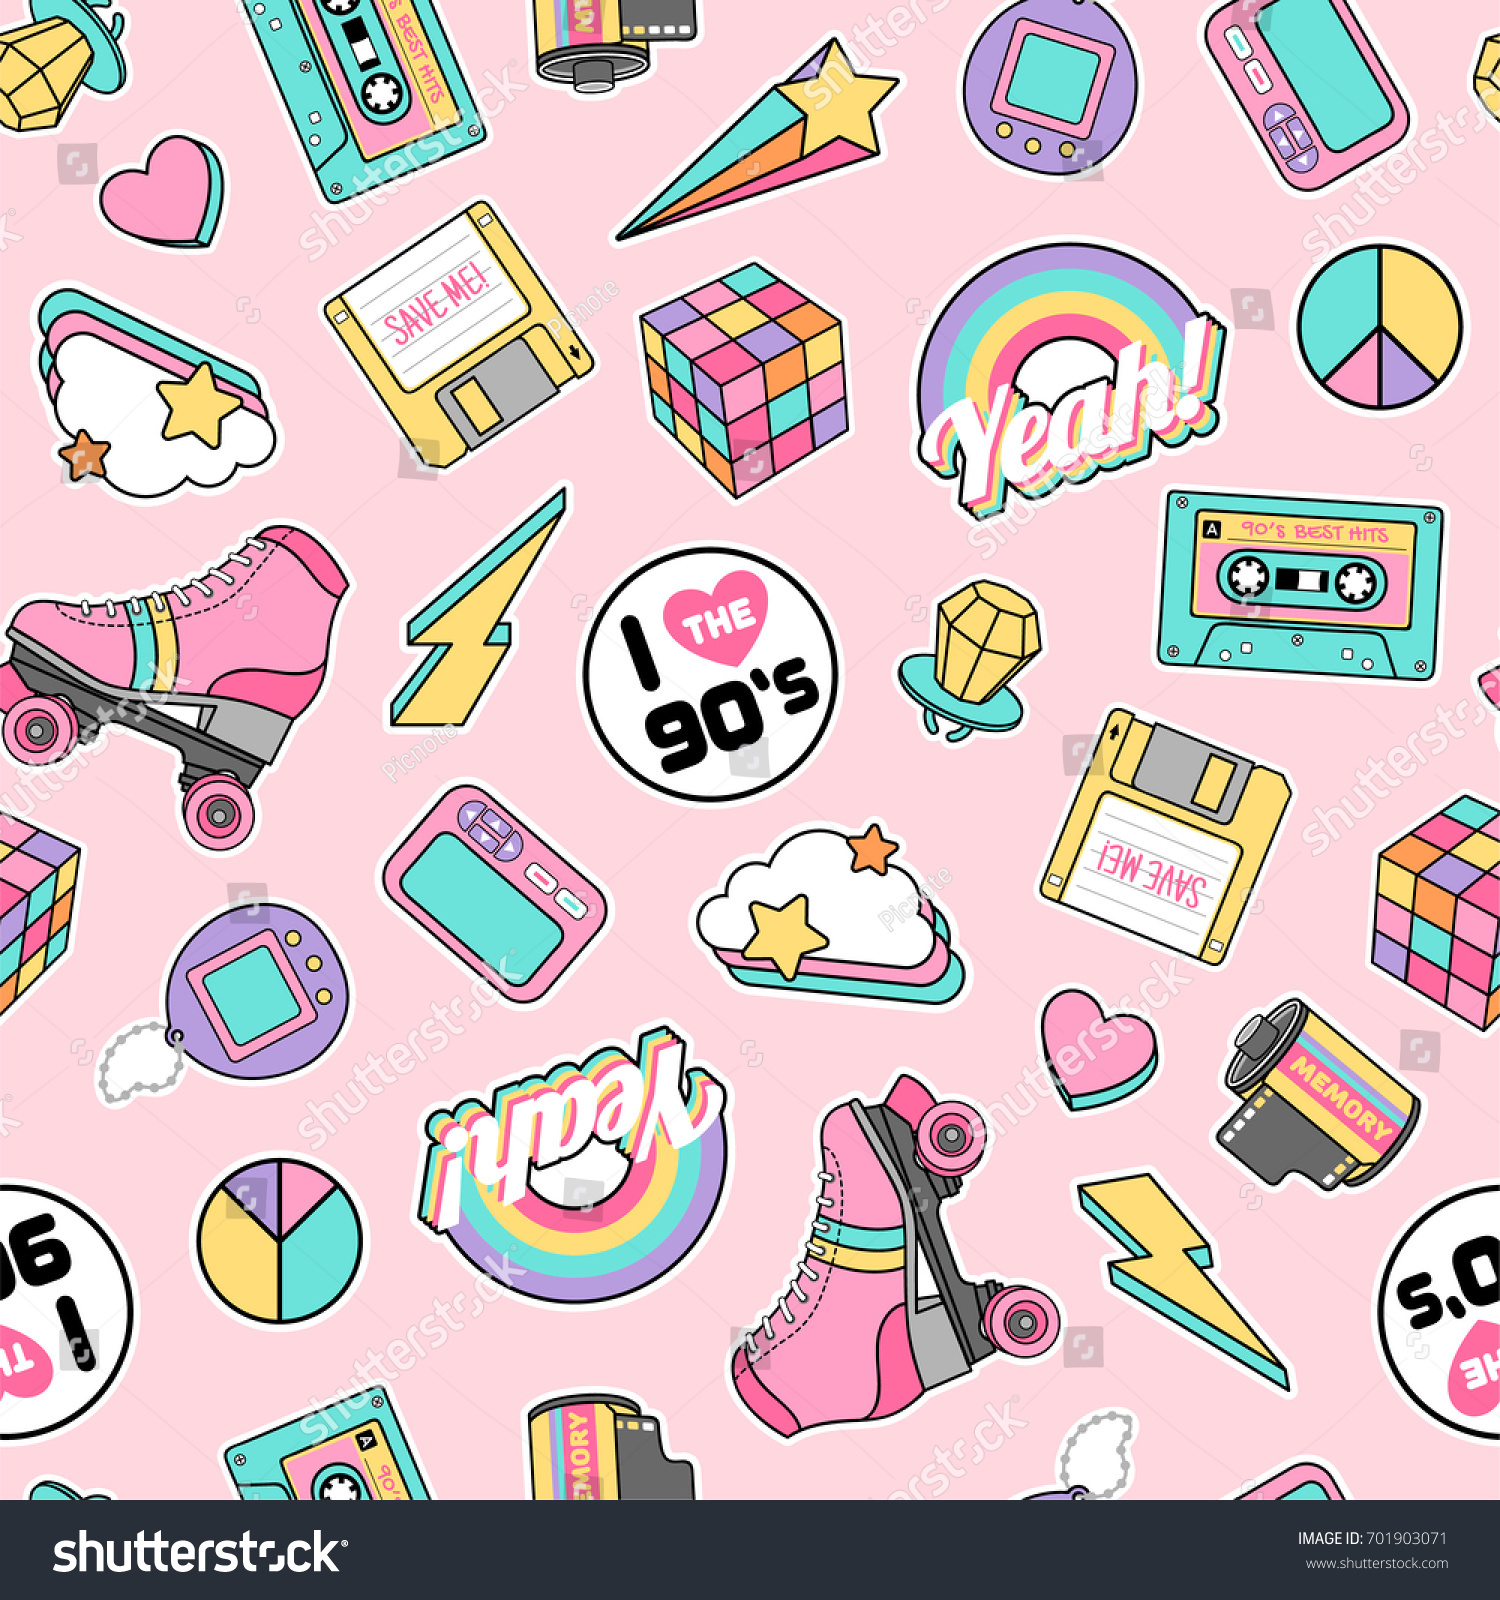 Cute pastel gadget illustration seamless pattern stock vector hd cute pastel gadget illustration seamless pattern with pink background in retro concept voltagebd Gallery